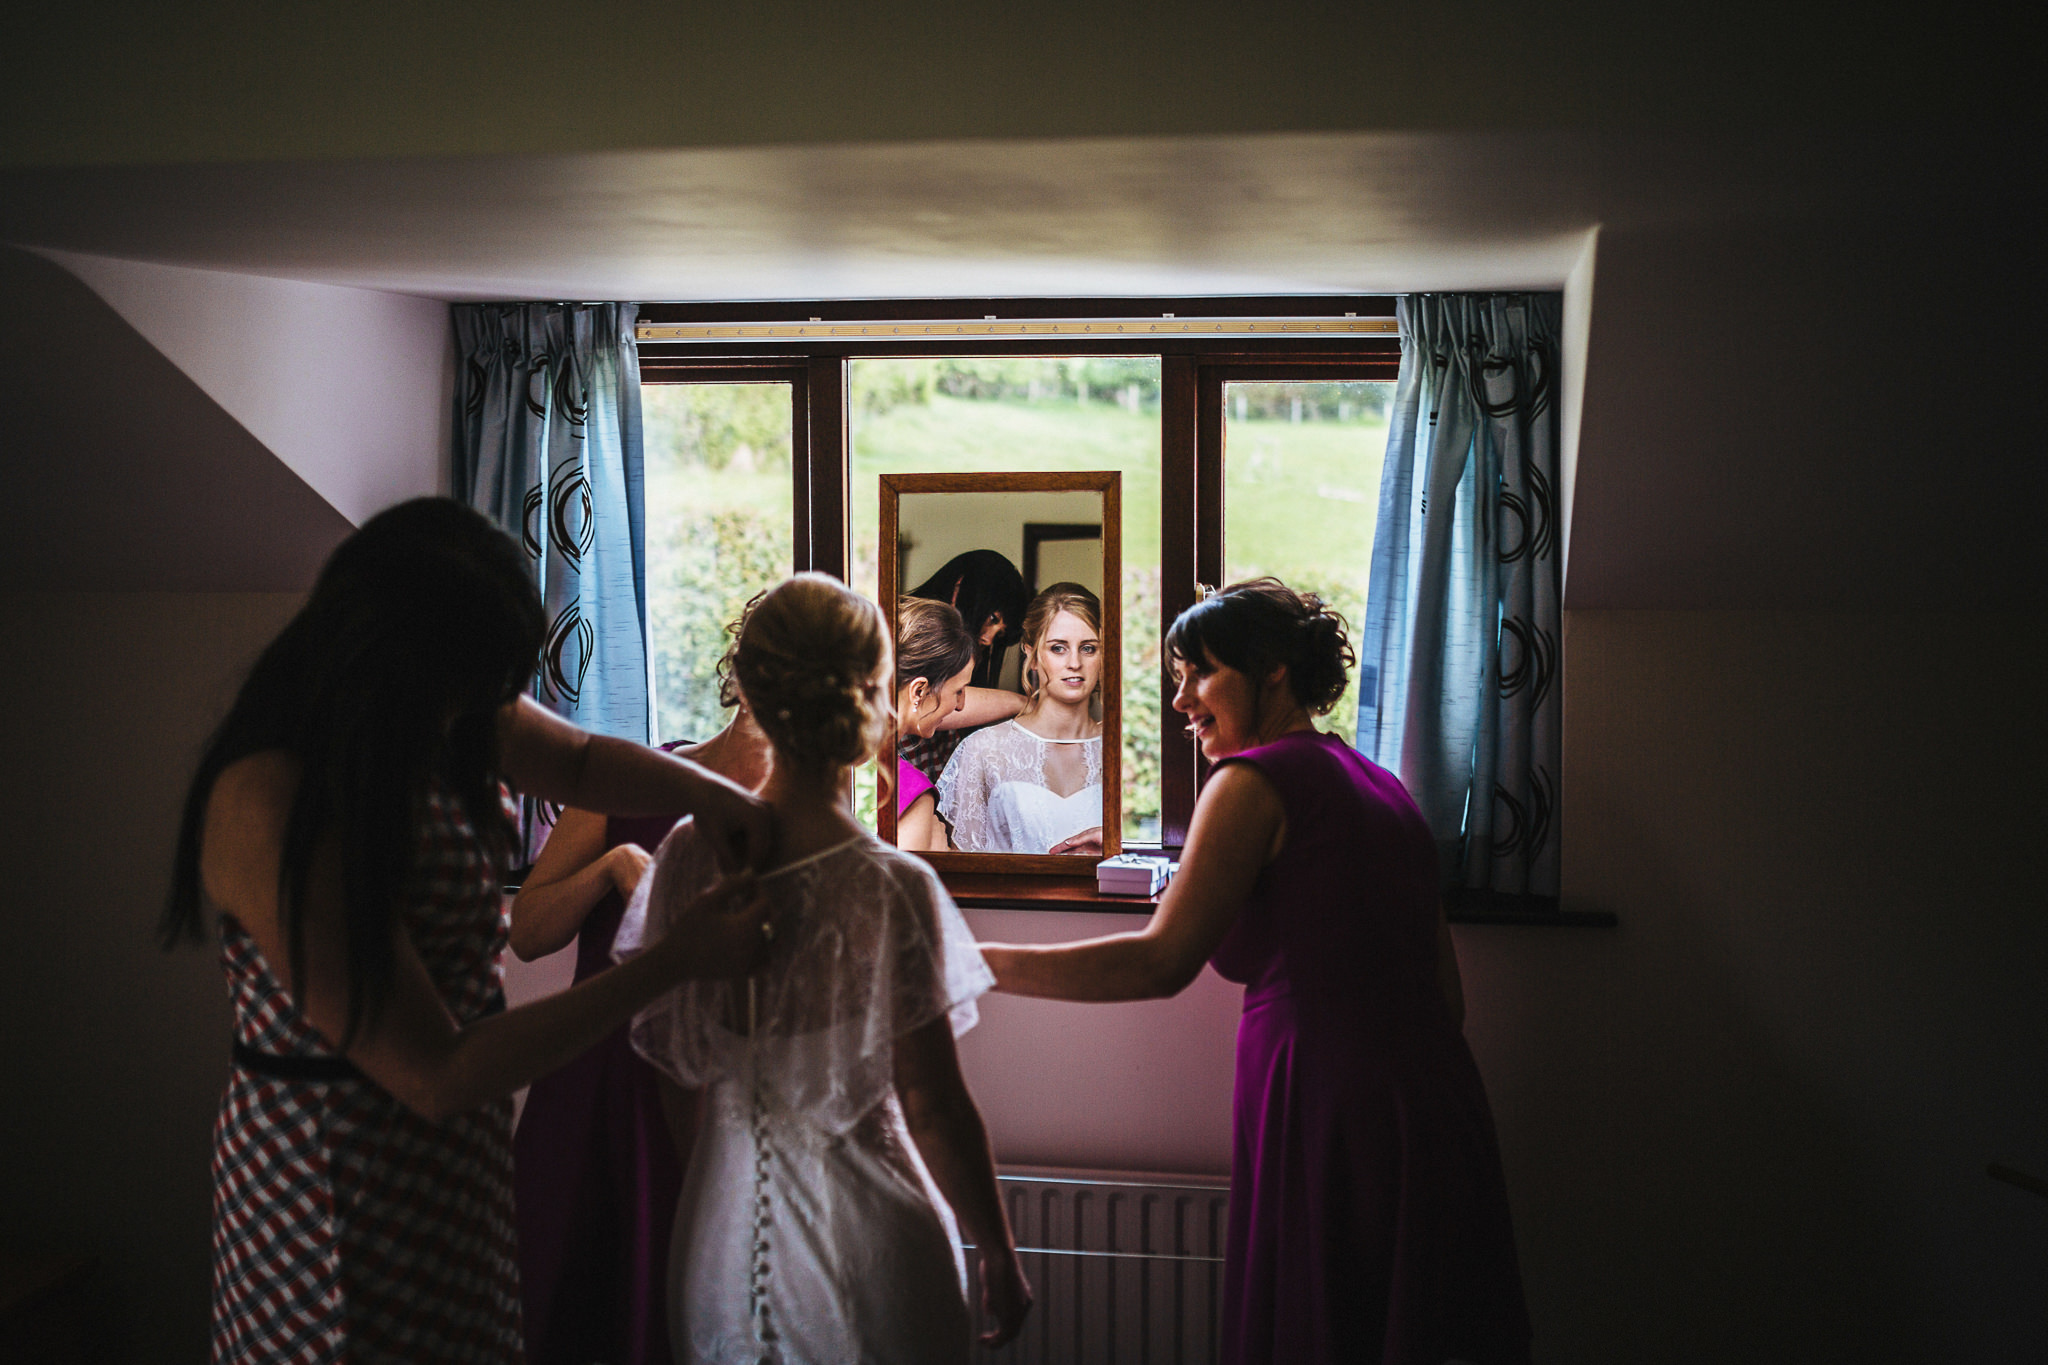 plas-isaf-corwen-north wales wedding-photography-photographer-91016